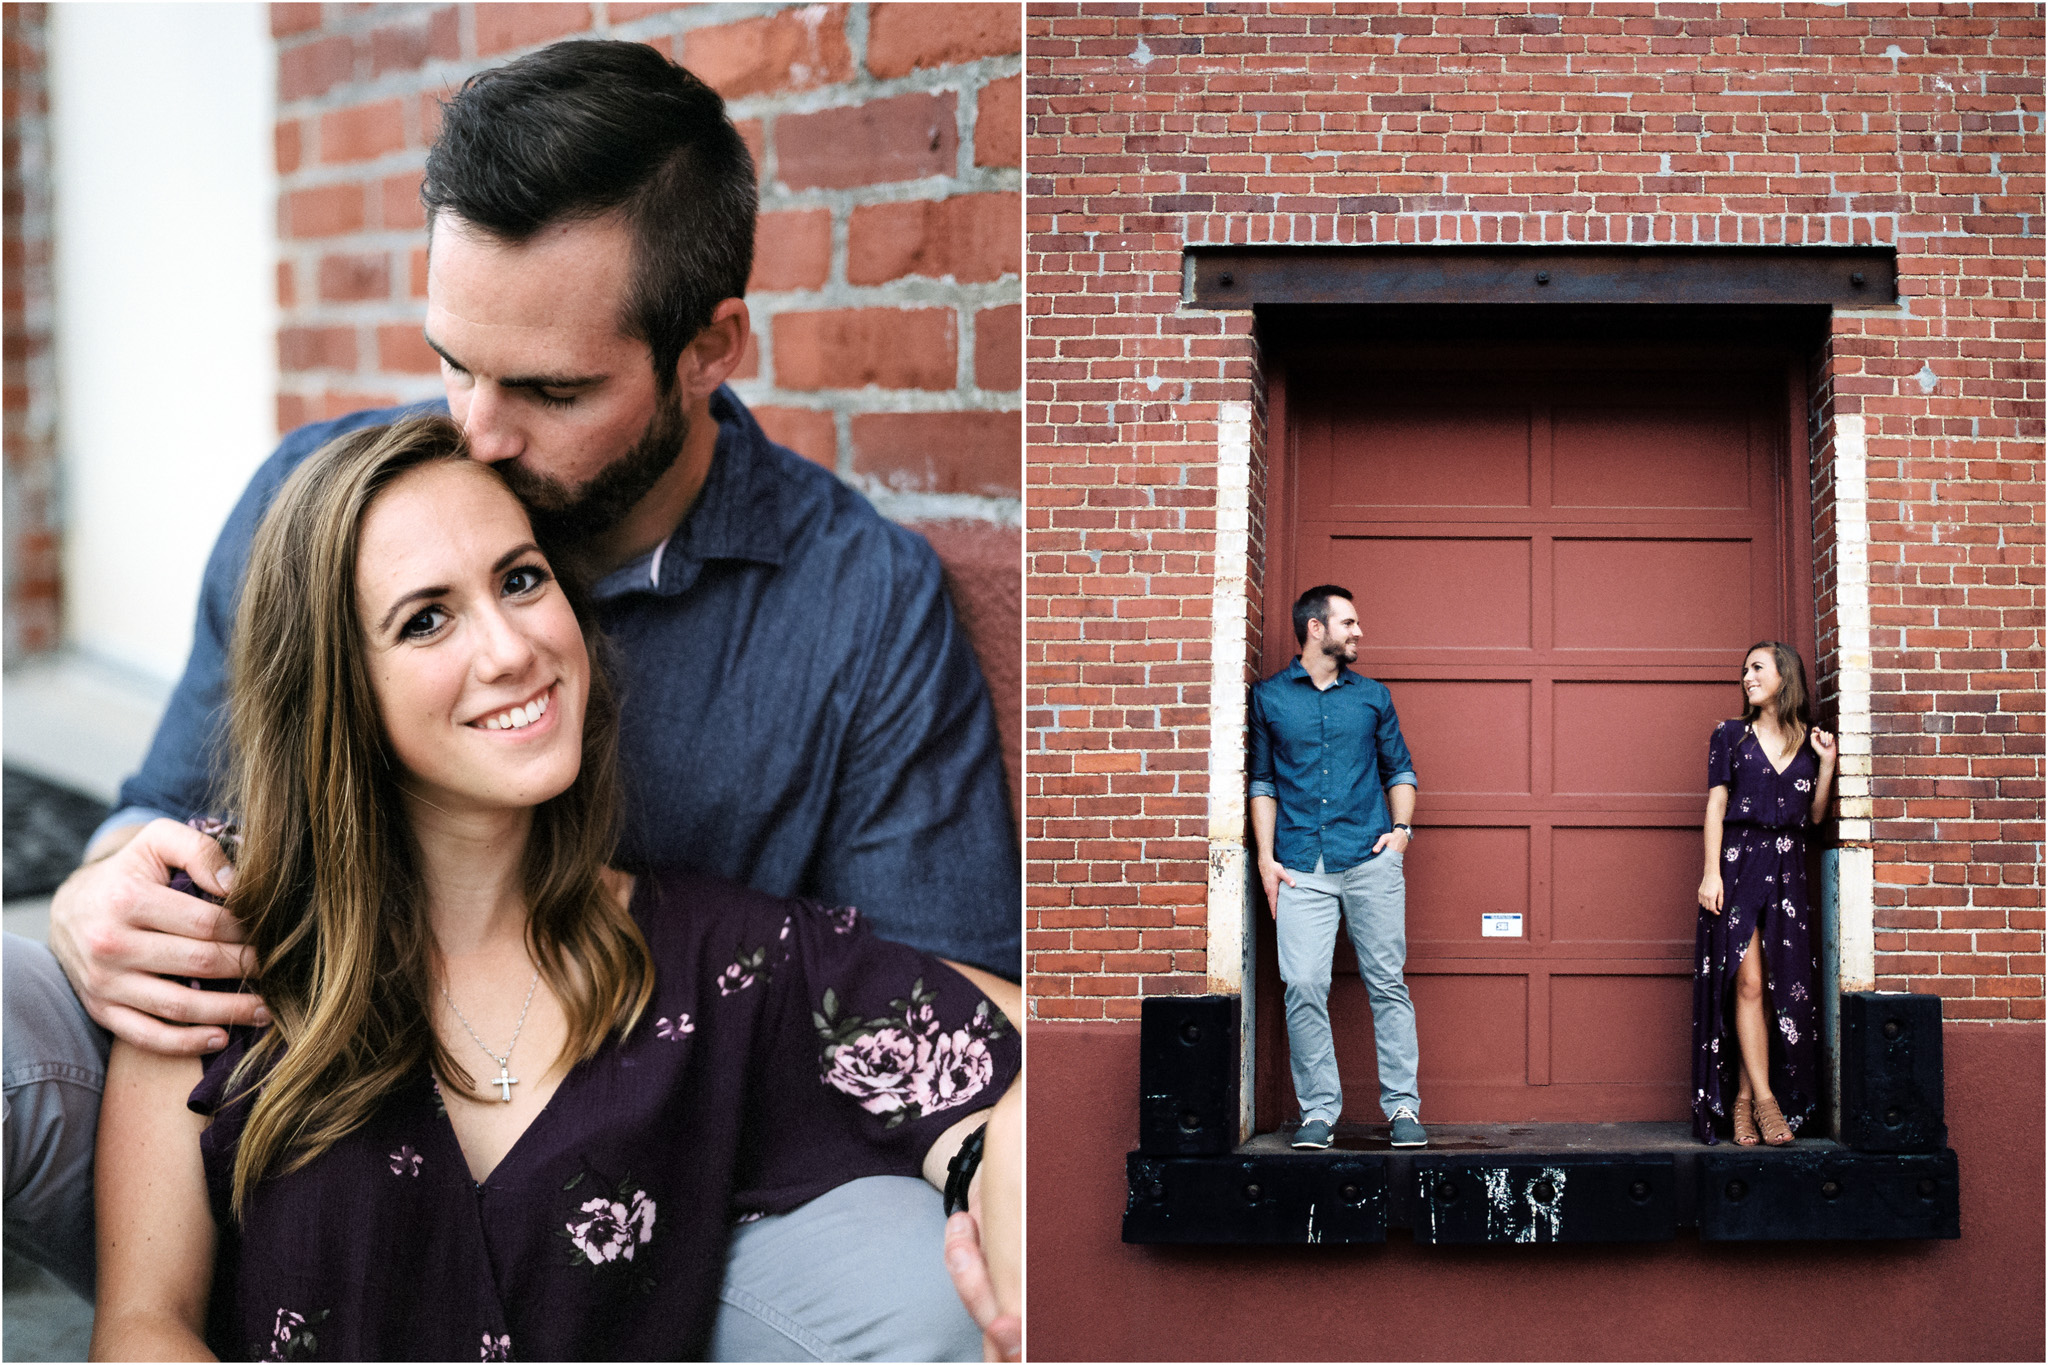 Omaha_Film_Engagement_Session_Dark_Moody_Andrea_and_Mike-01.jpg